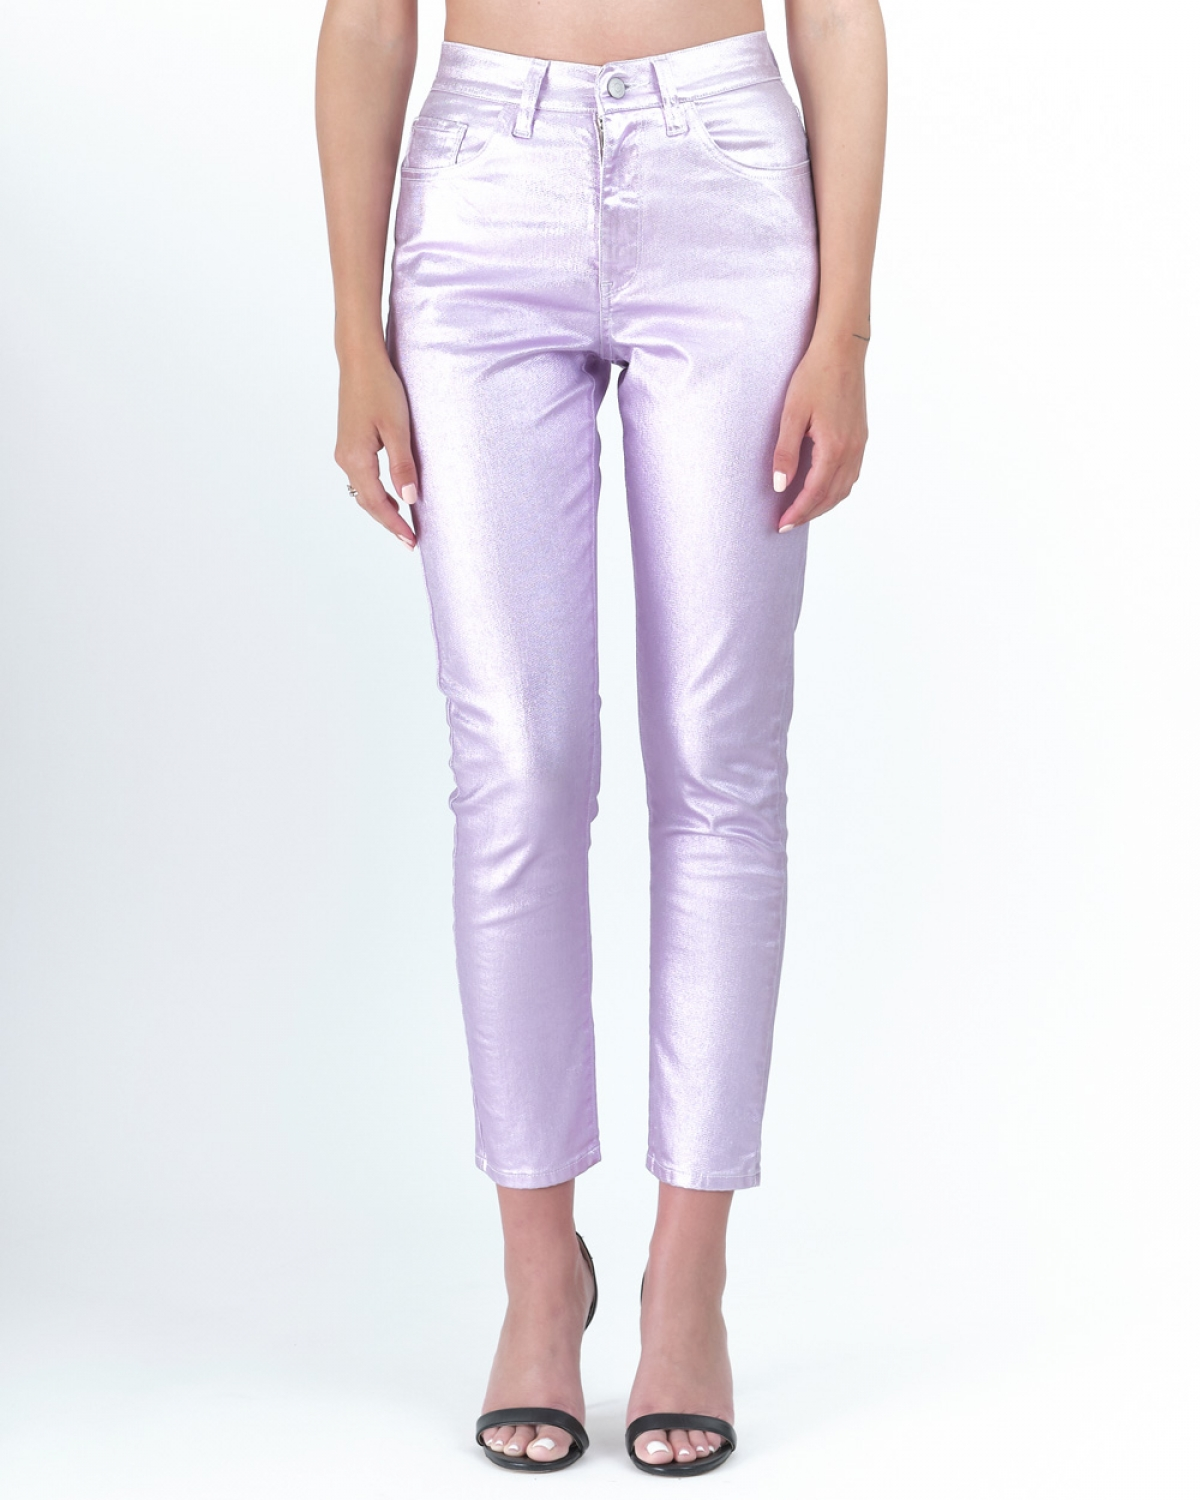 Kate Dynasty Pink Jeans